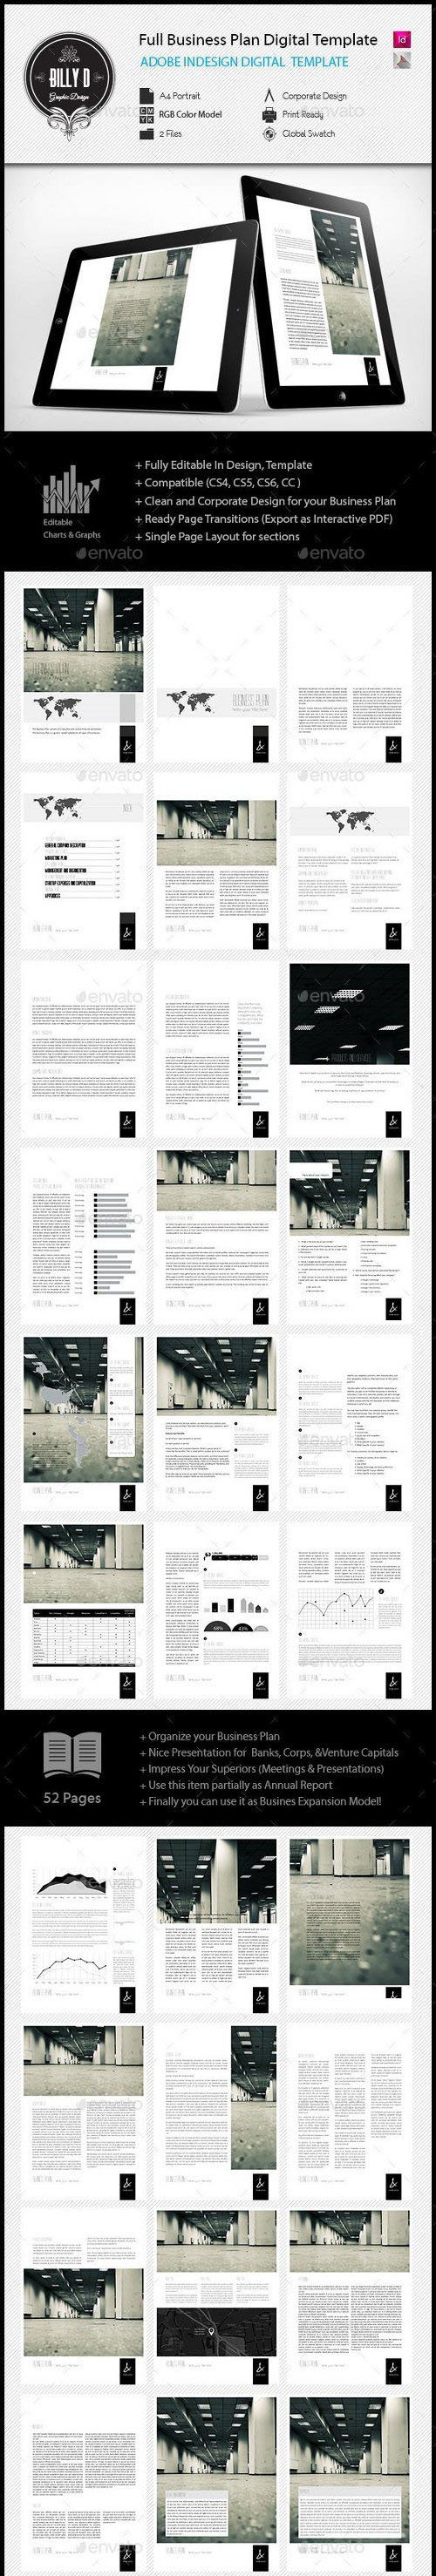 GR - Full Business Plan Digital InDesign A4 Template